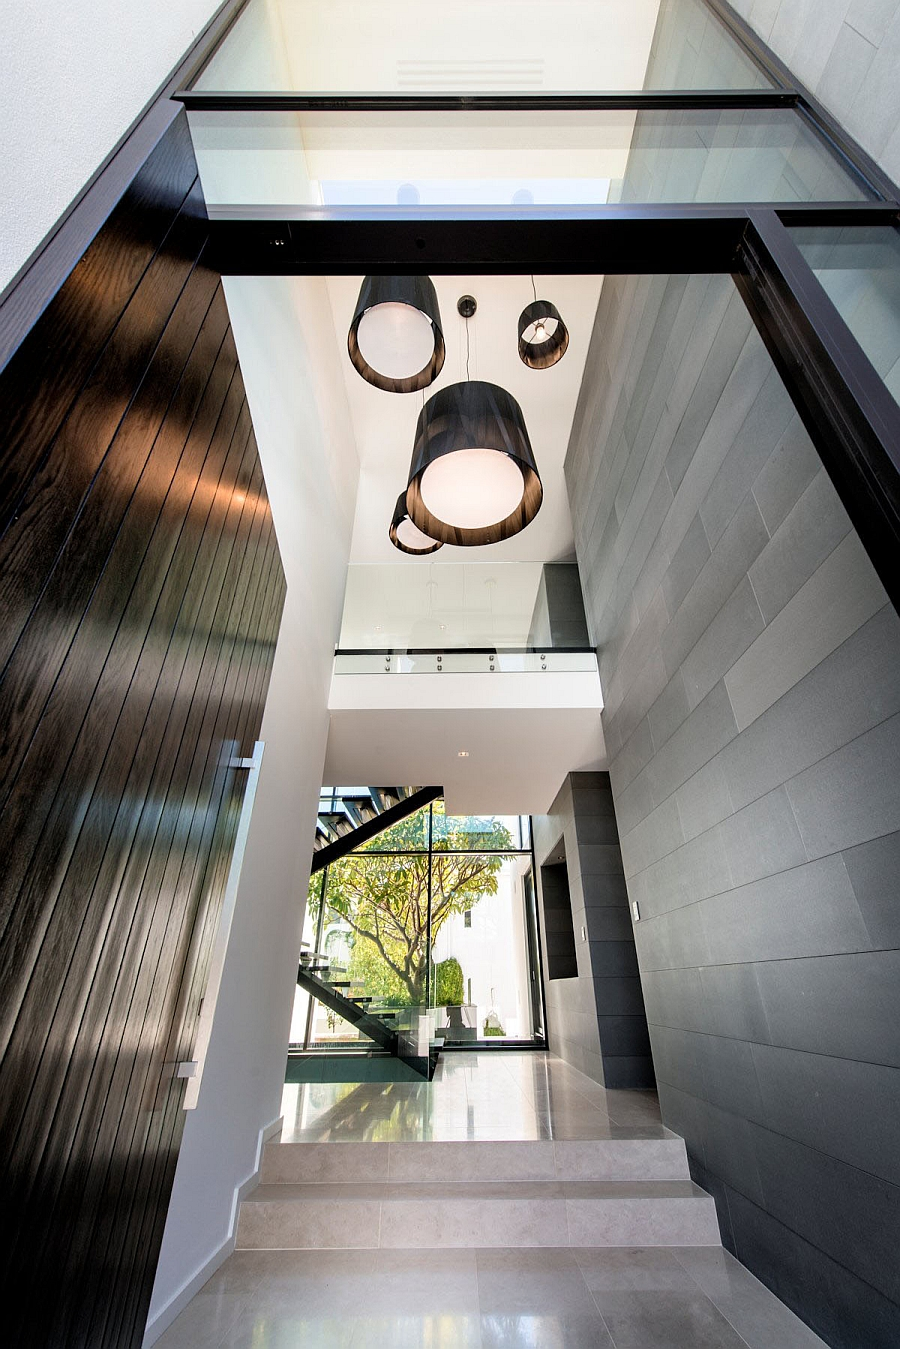 Large pendants hold their own in the hallway with high ceiling